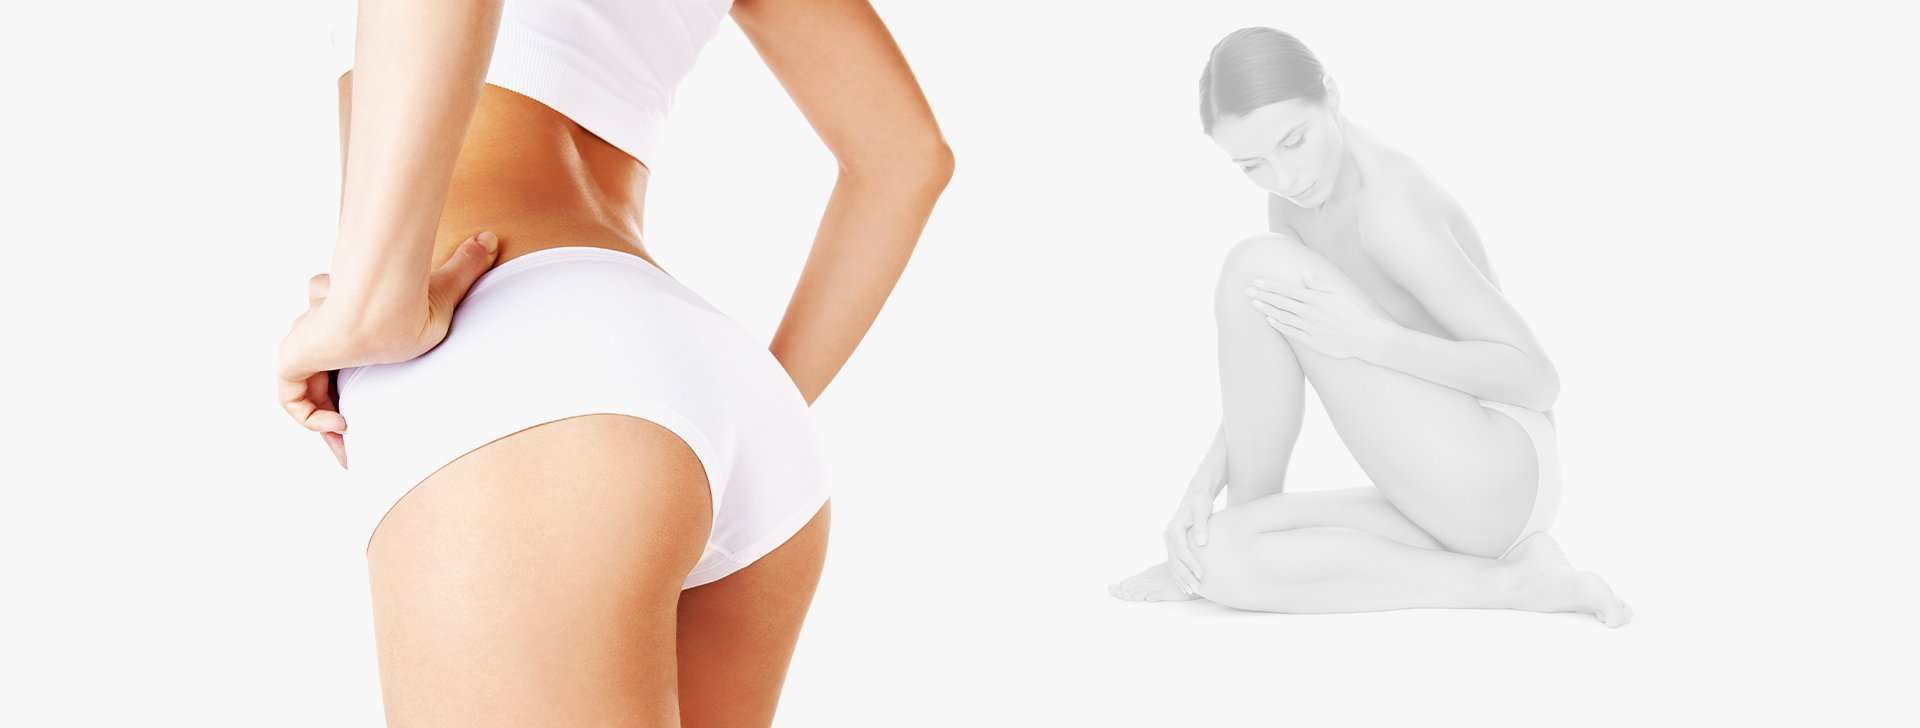 Woman body plastic surgery